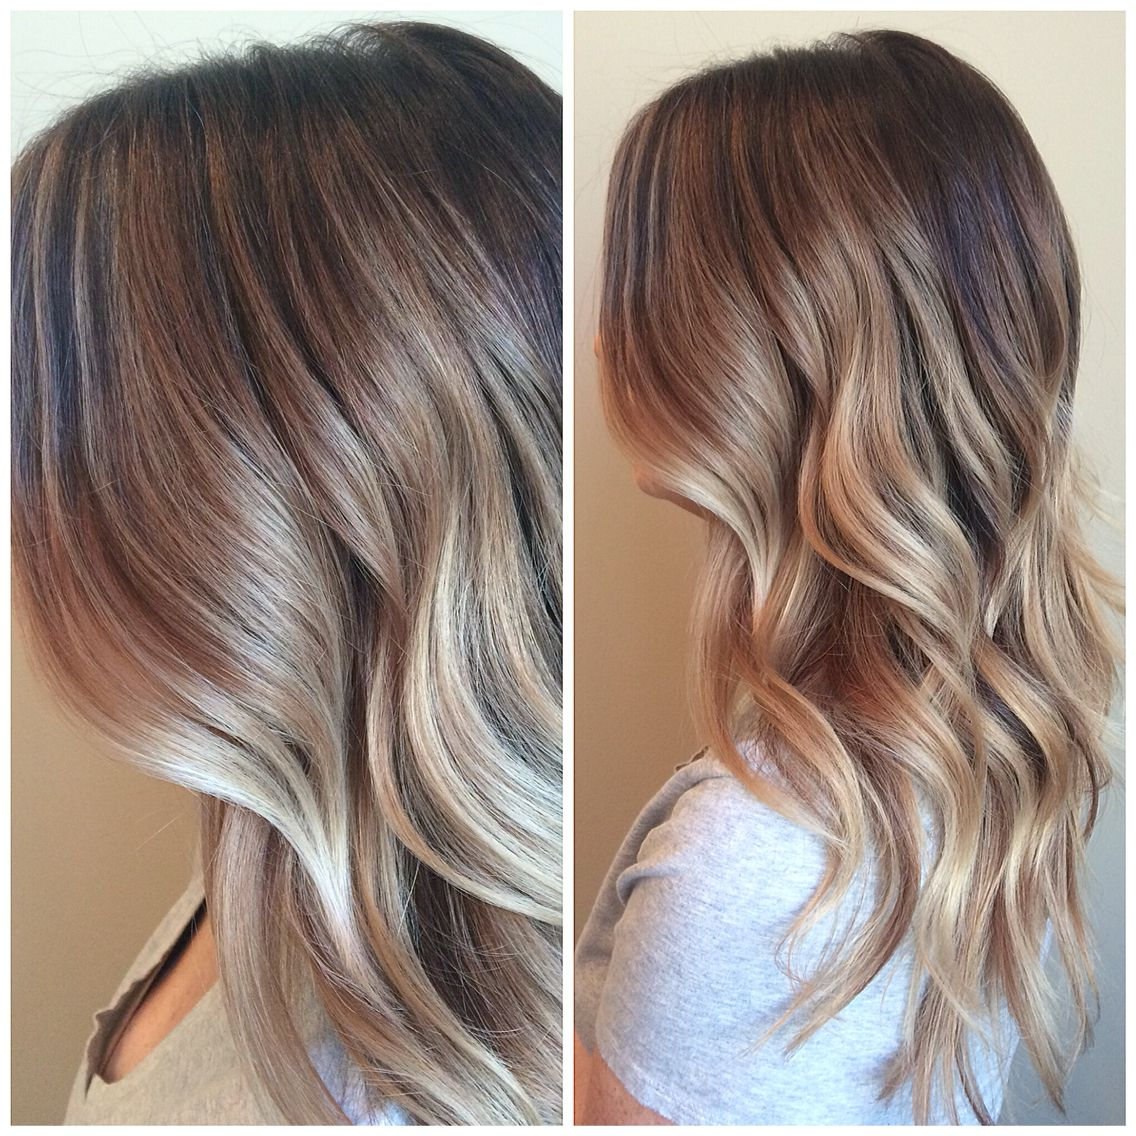 balayage highlights brown blonde melt waves ombr beachy beige blonde honey caramel style hair. Black Bedroom Furniture Sets. Home Design Ideas